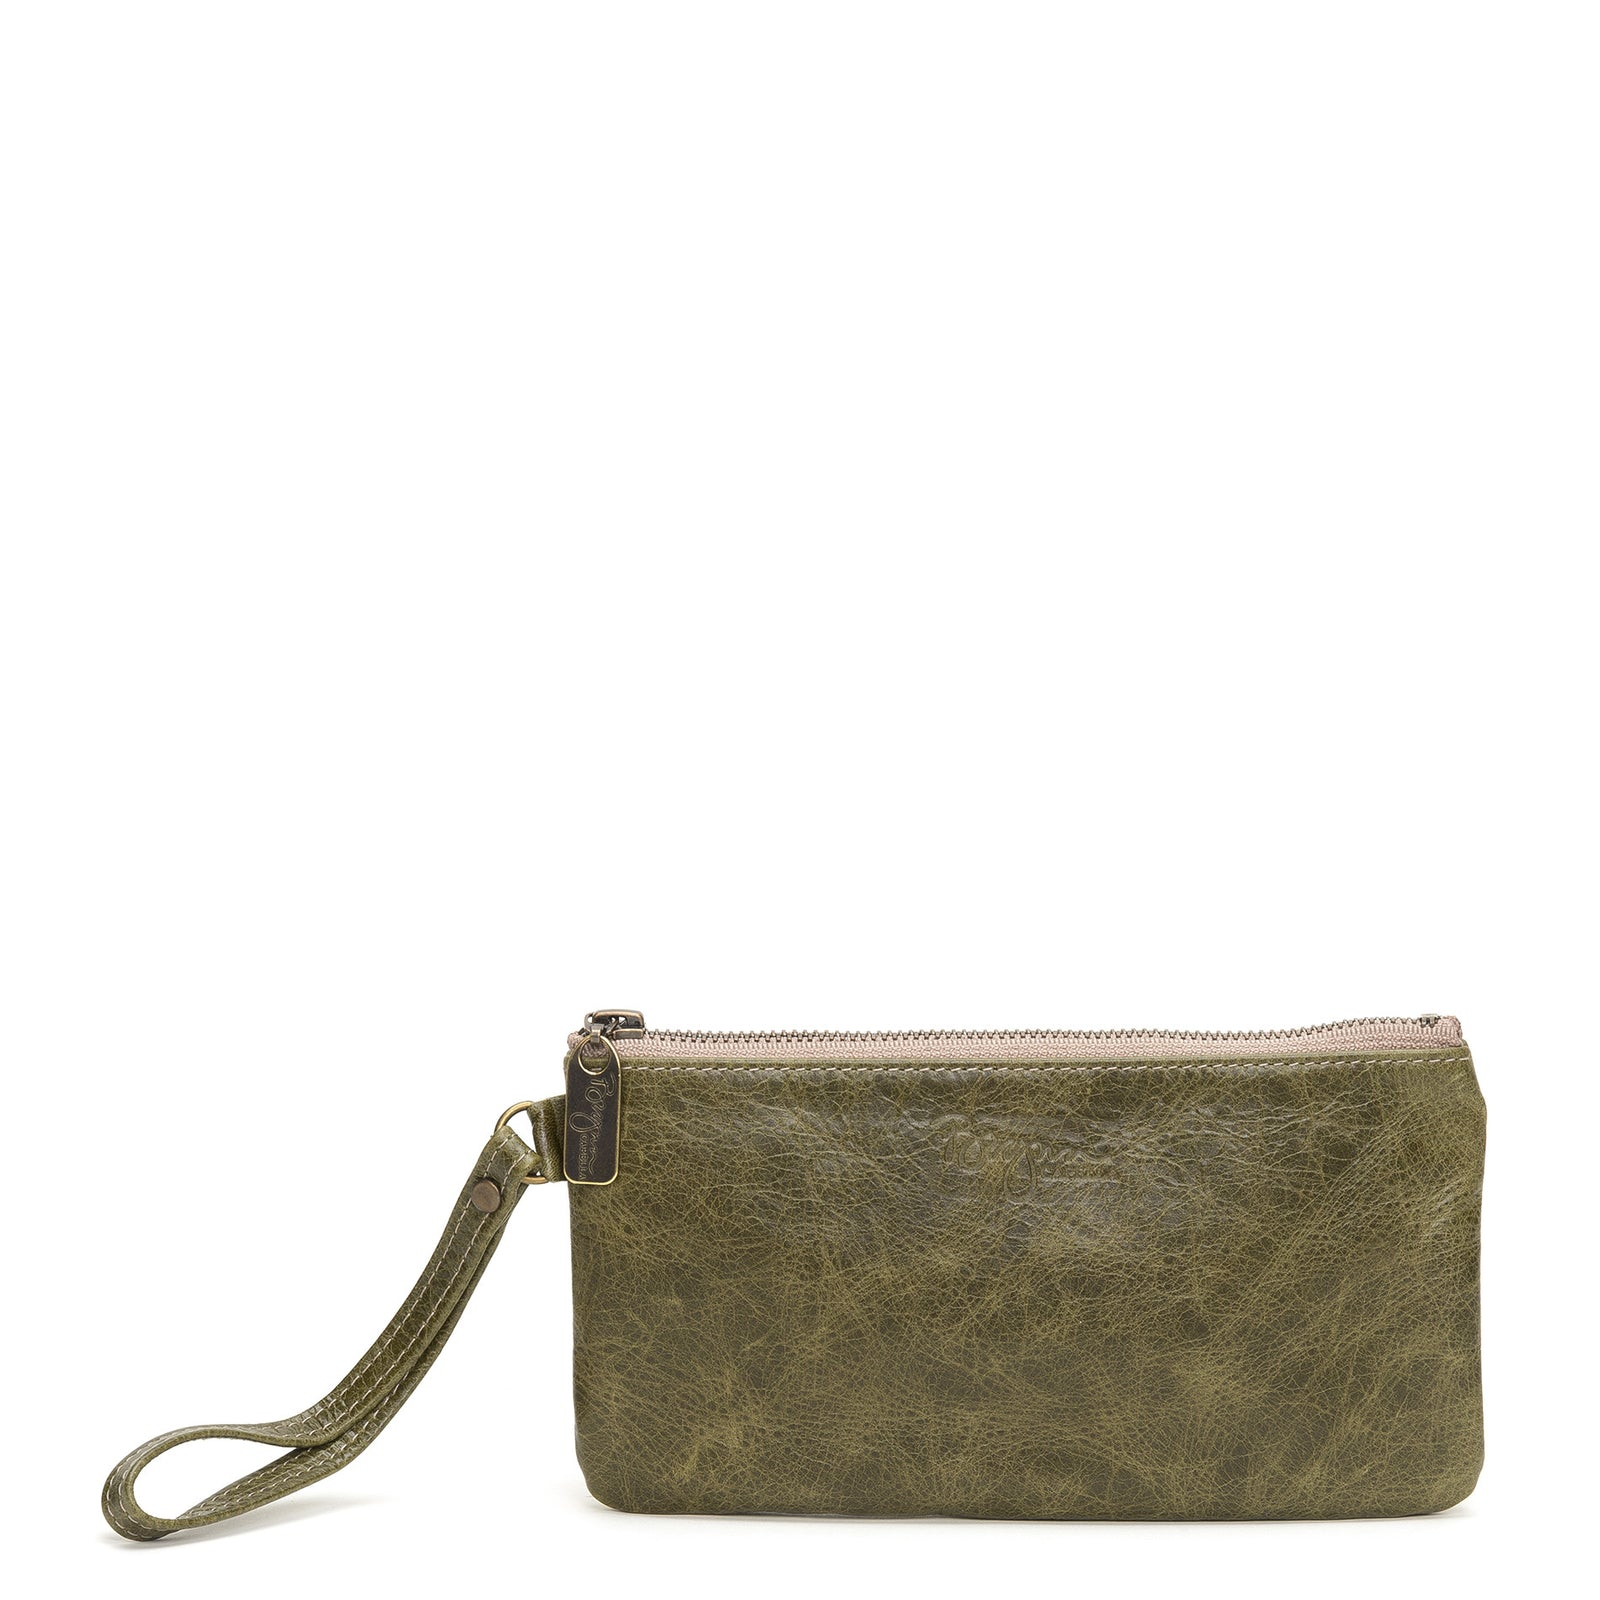 Cher Wristlet - Happy Trails - Brynn Capella, Wristlet